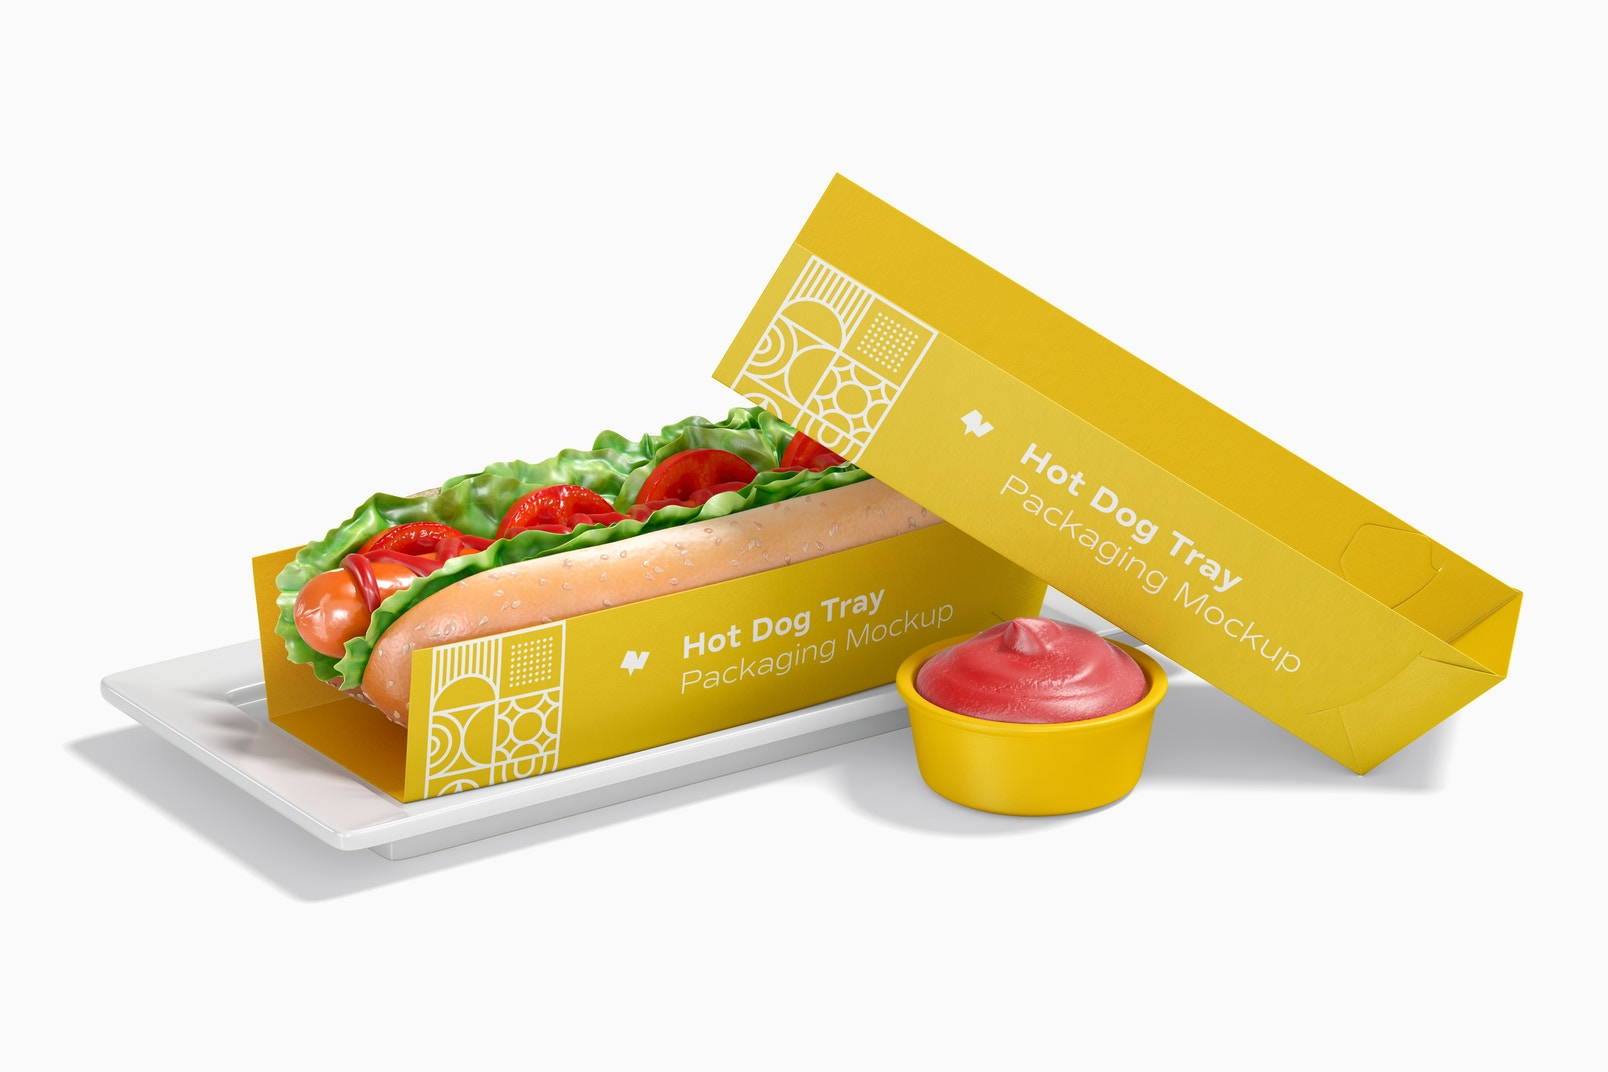 Hot Dog Tray Packaging Mockup, Front View